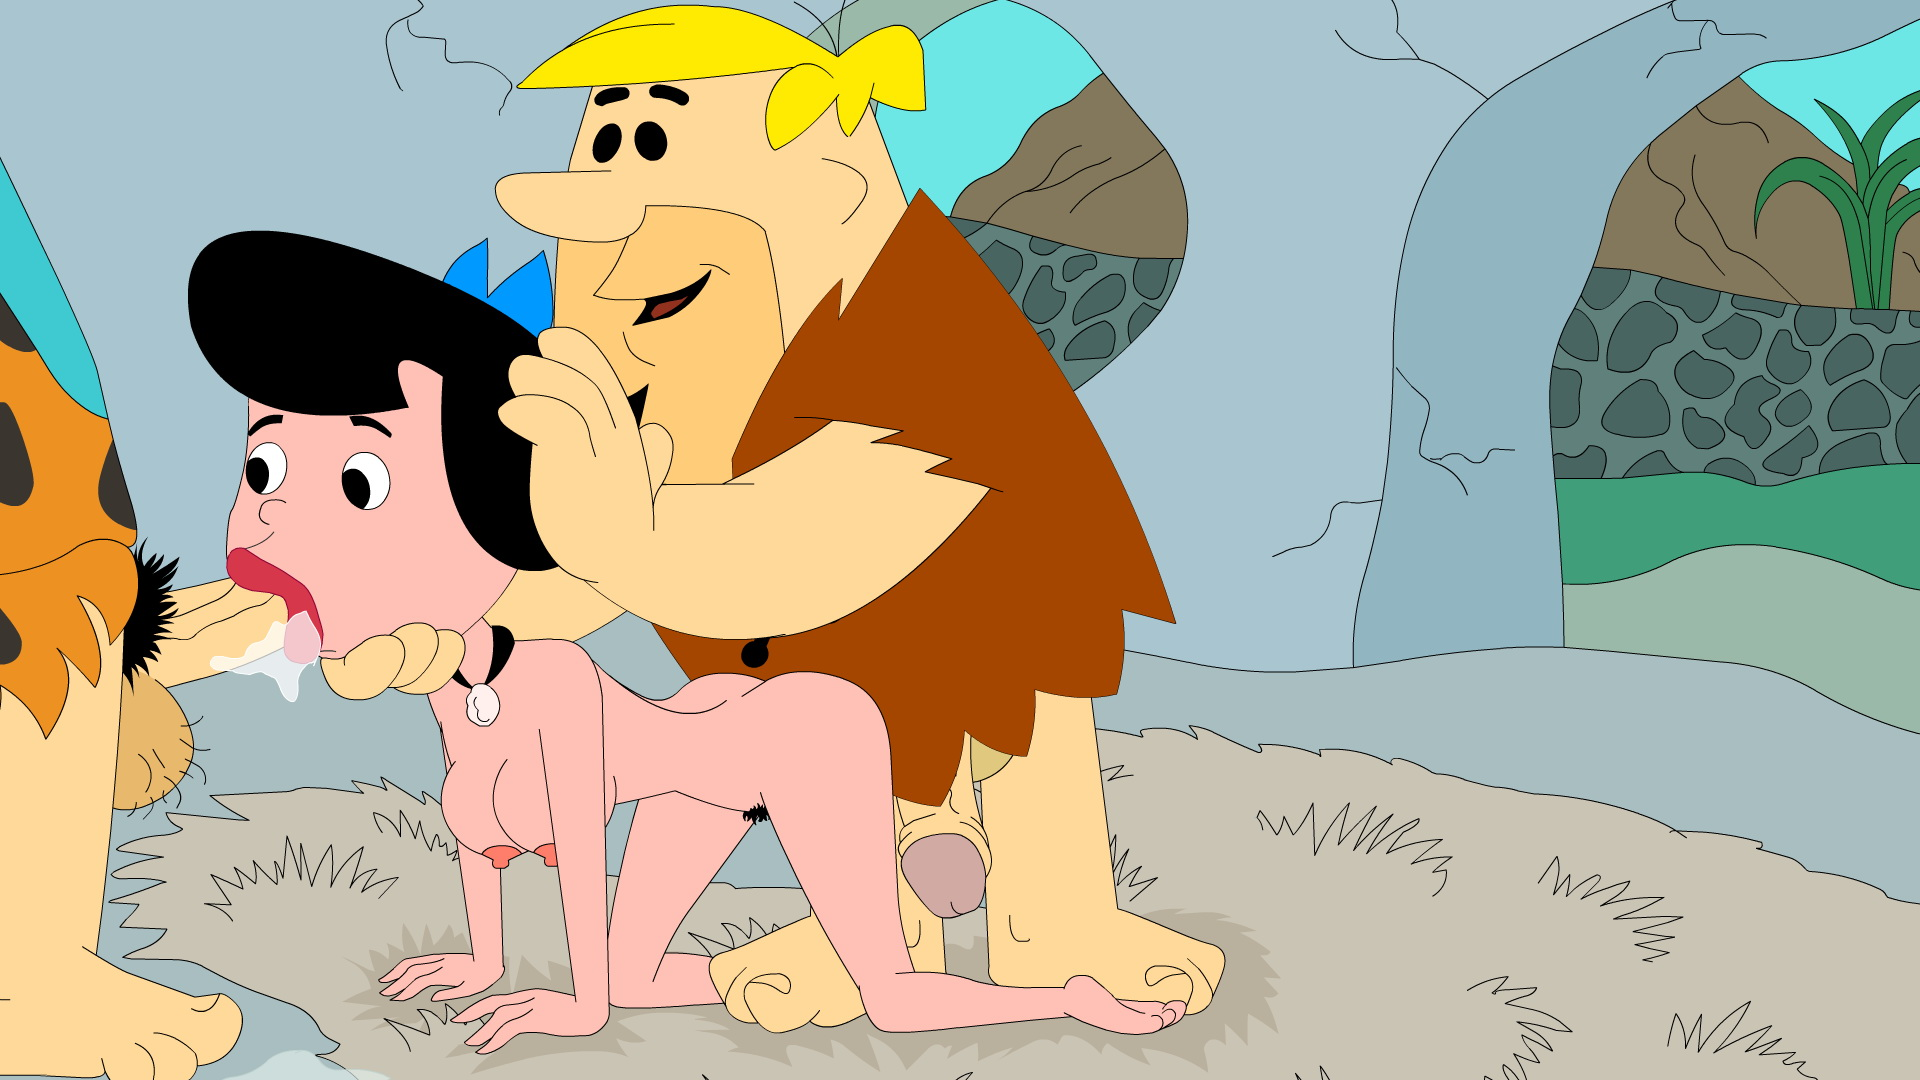 Free hd movies of cartoons having sex naked videos